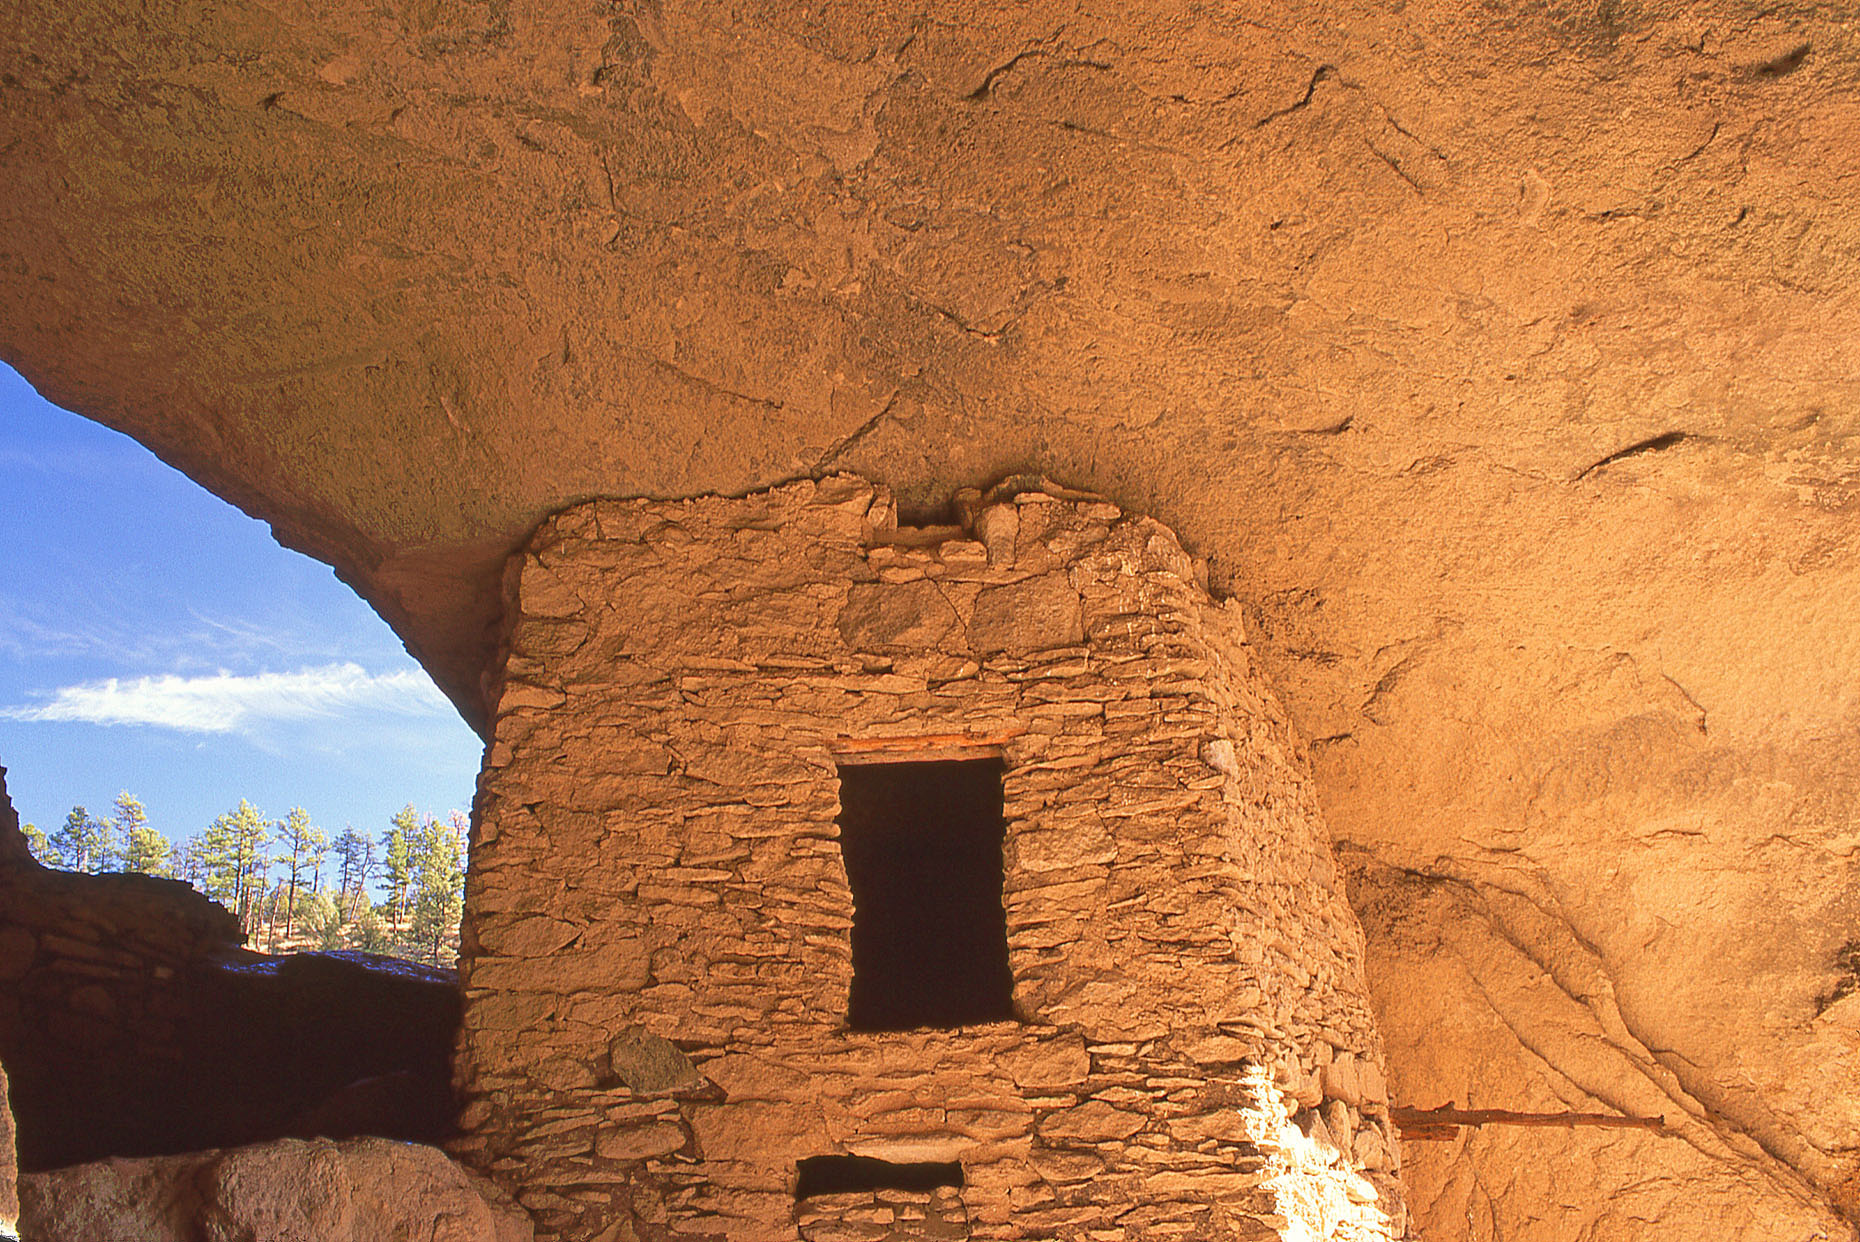 Food storage granary, John Annerino, Gila Cliff Dwellings National Monument, NM, Ancestral Mogollon